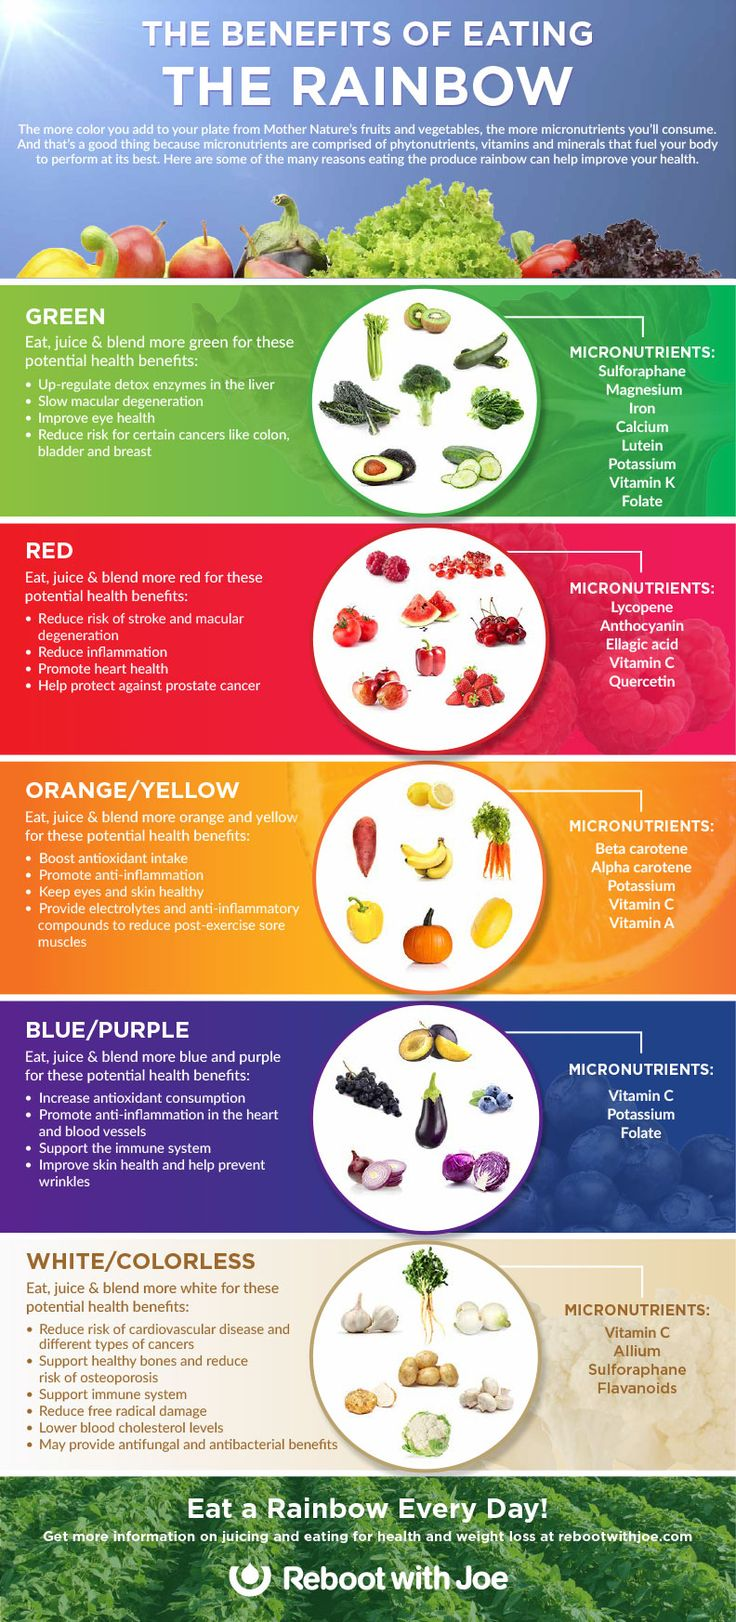 ~~The Benefits of Eating the Rainbow Infographic | Green, red, yellow, orange, blue, purple and white fruits and vegetables that are grown right out of the ground, nourished by sunlight, and are the healthiest foods on the planet.